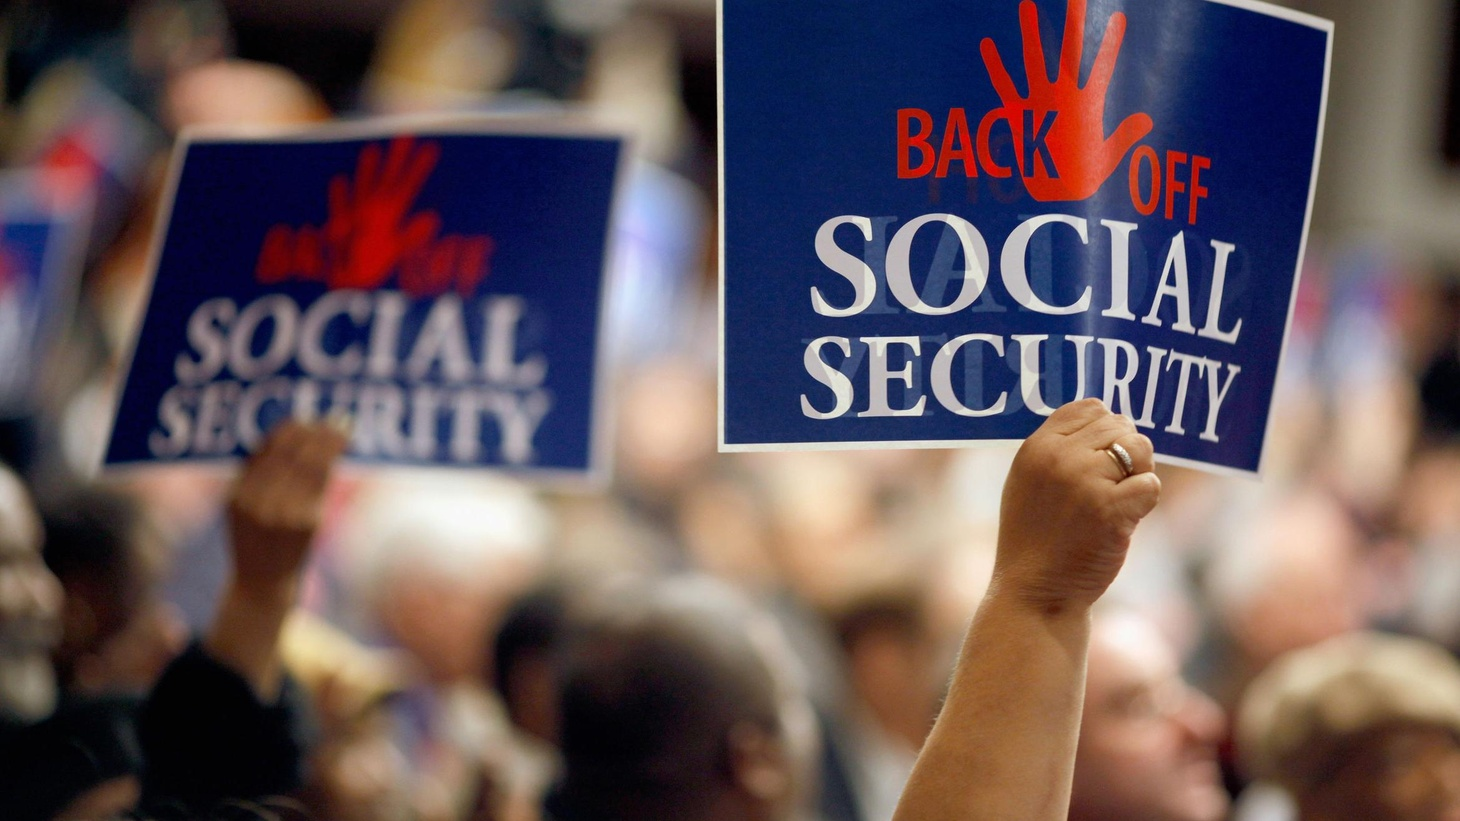 Washington's most potent advocate for the elderly says cuts in Social Security might be inevitable. Is that a change of position? Should Social Security become part of deficit reduction?